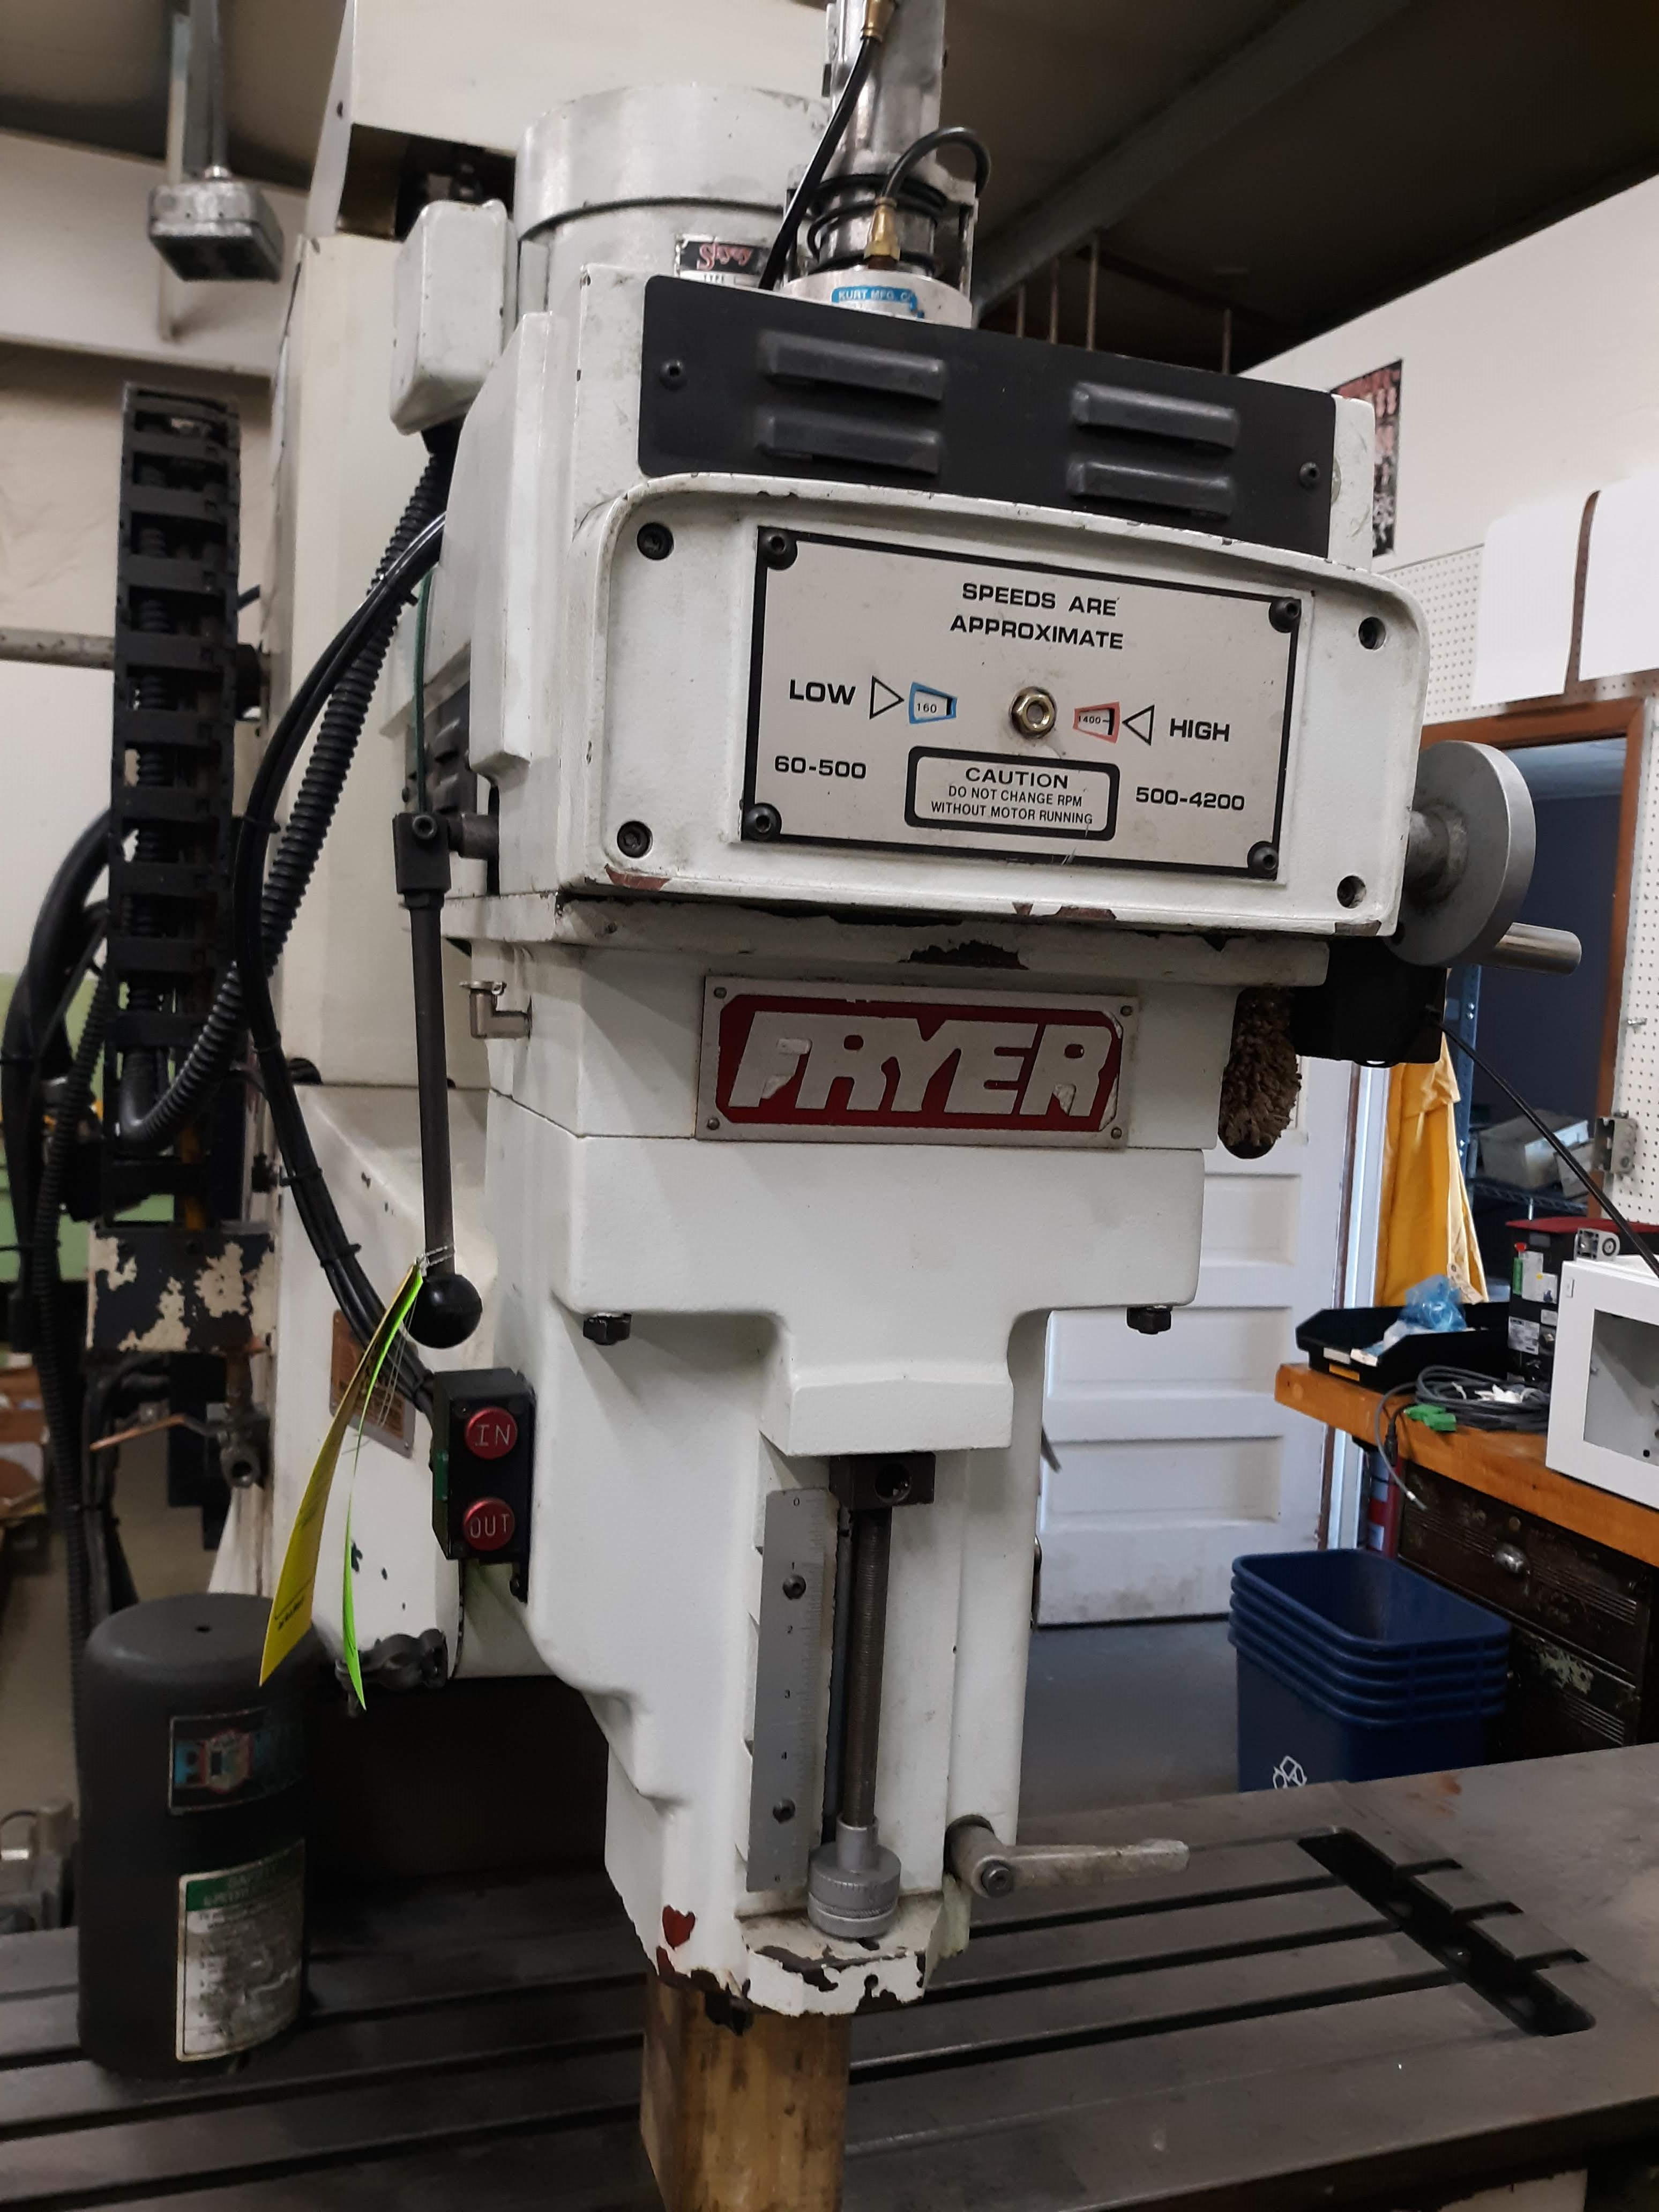 FRYER CNC MILLING MACHINE MODEL-MB-14 S#14247 54 X 16 TABLE ANILAM 3300 MK DRO (LOCATED AT: 432 - Image 8 of 8